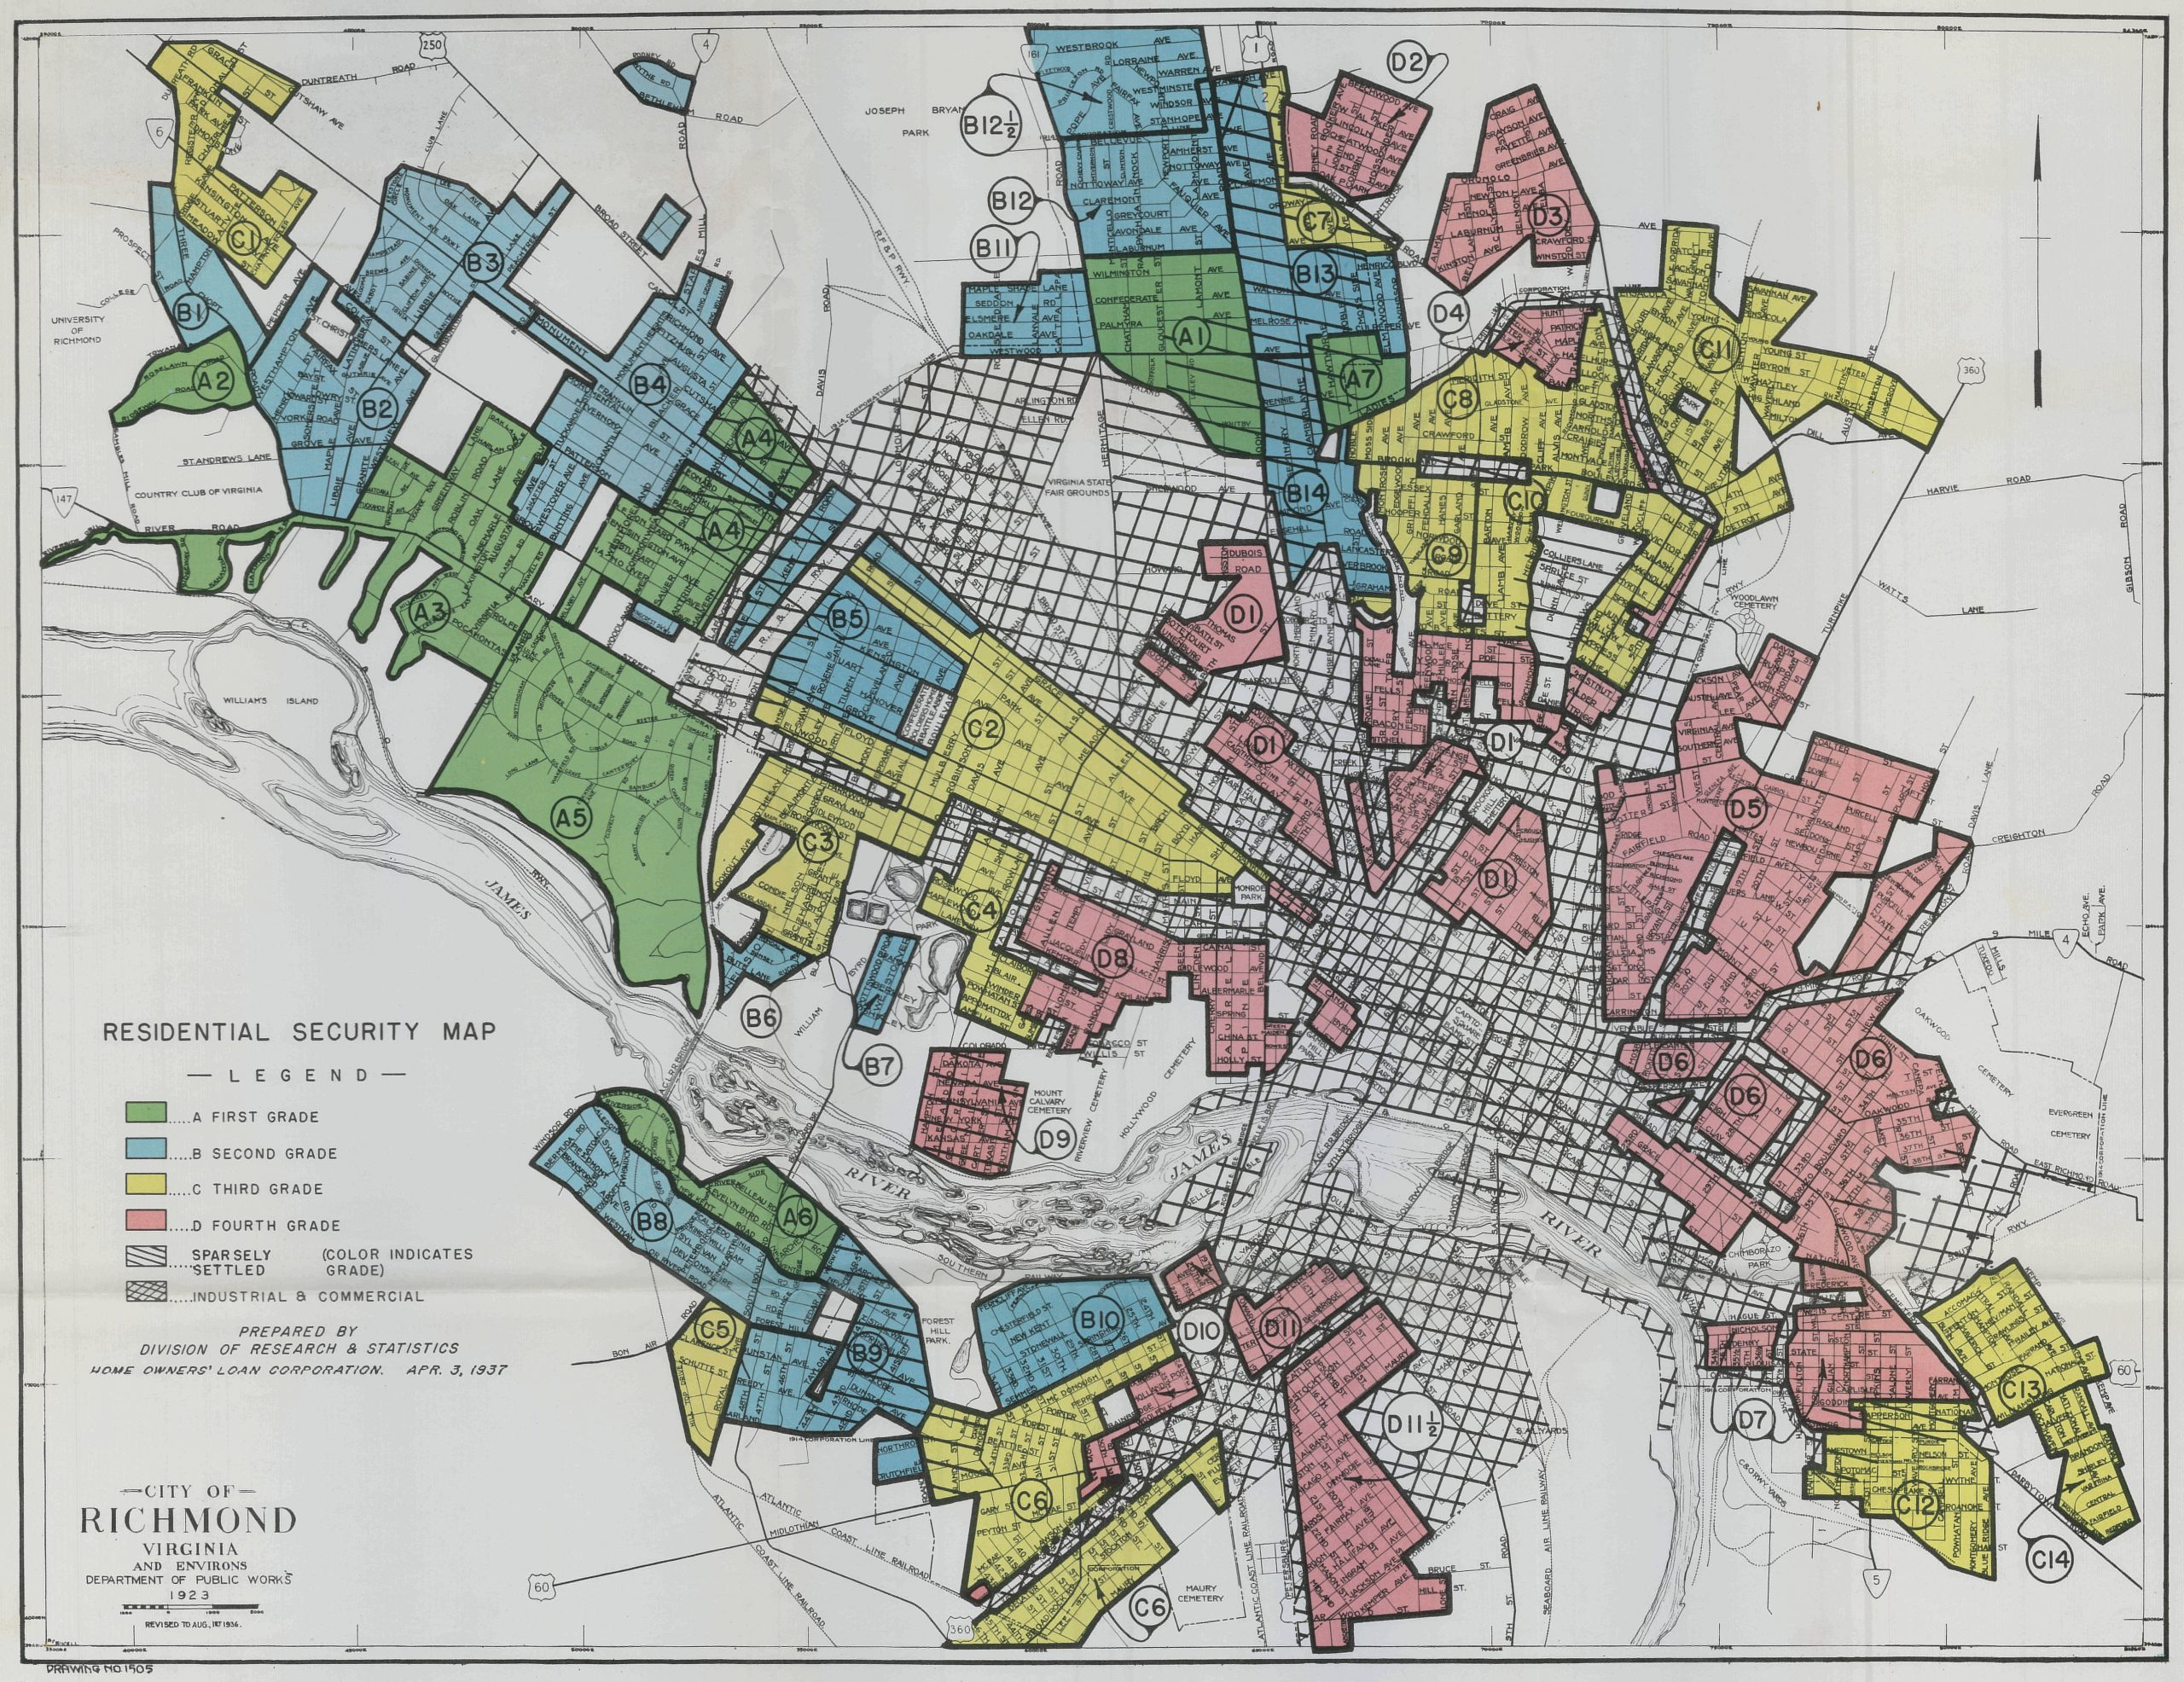 holc-scan-richmond-optimized-scaled